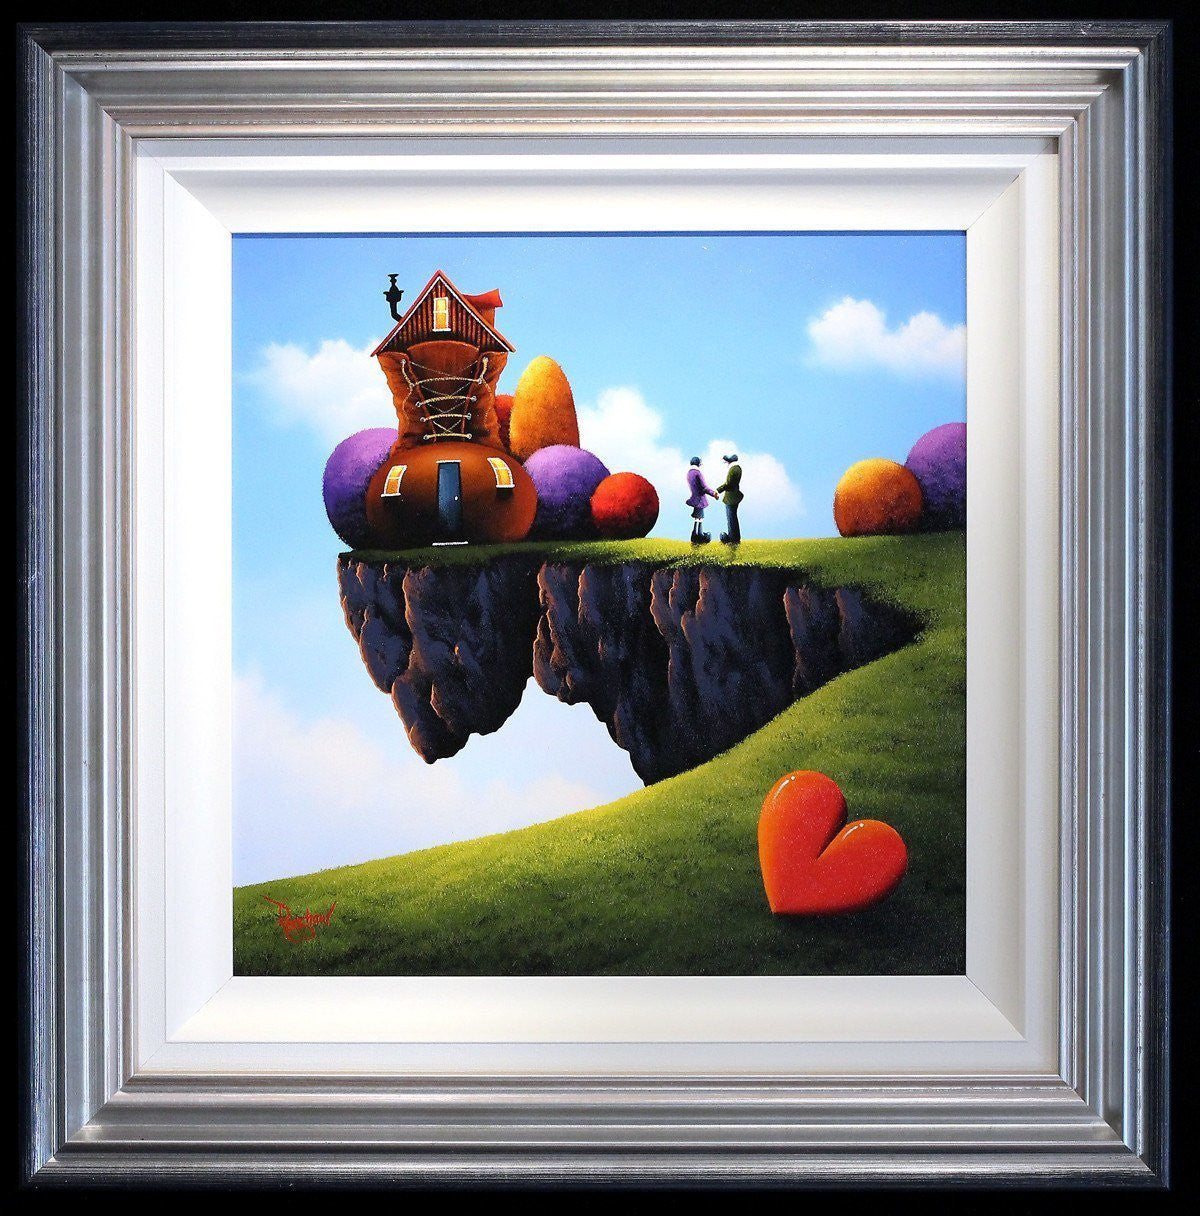 If The Shoe Fits! David Renshaw